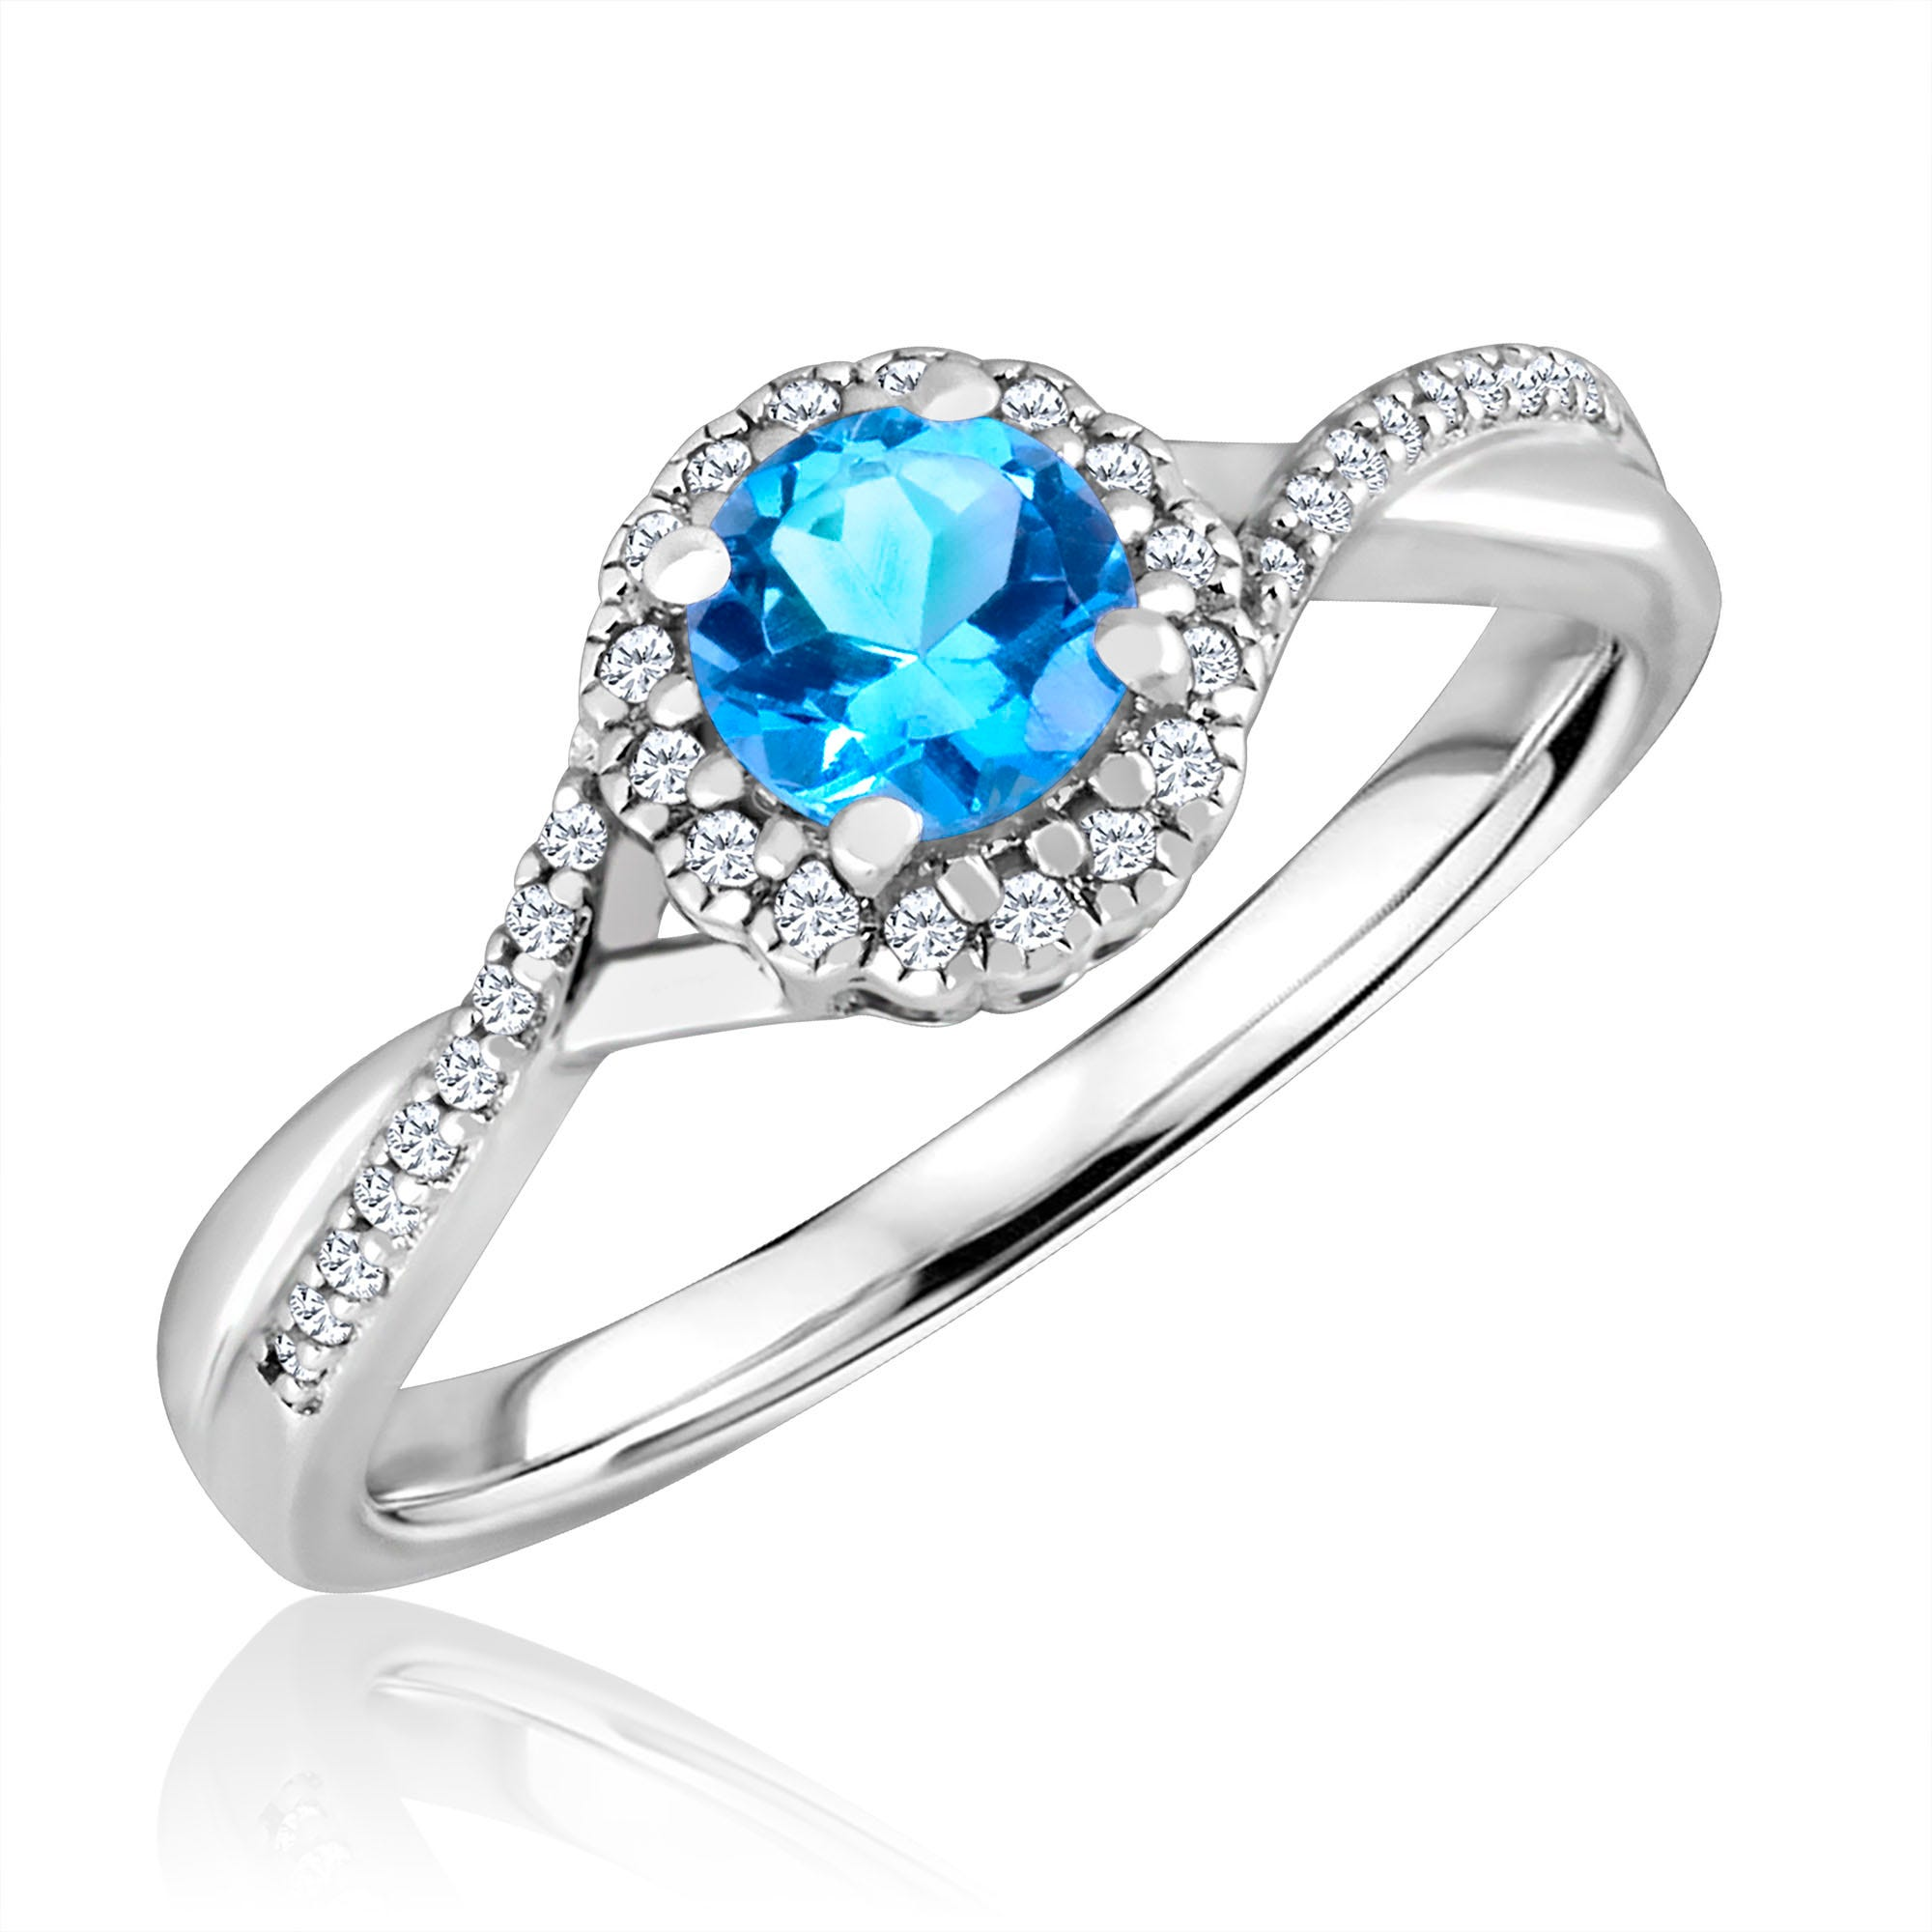 Round-Cut Blue Topaz & Diamond Infinity Ring in Sterling Silver